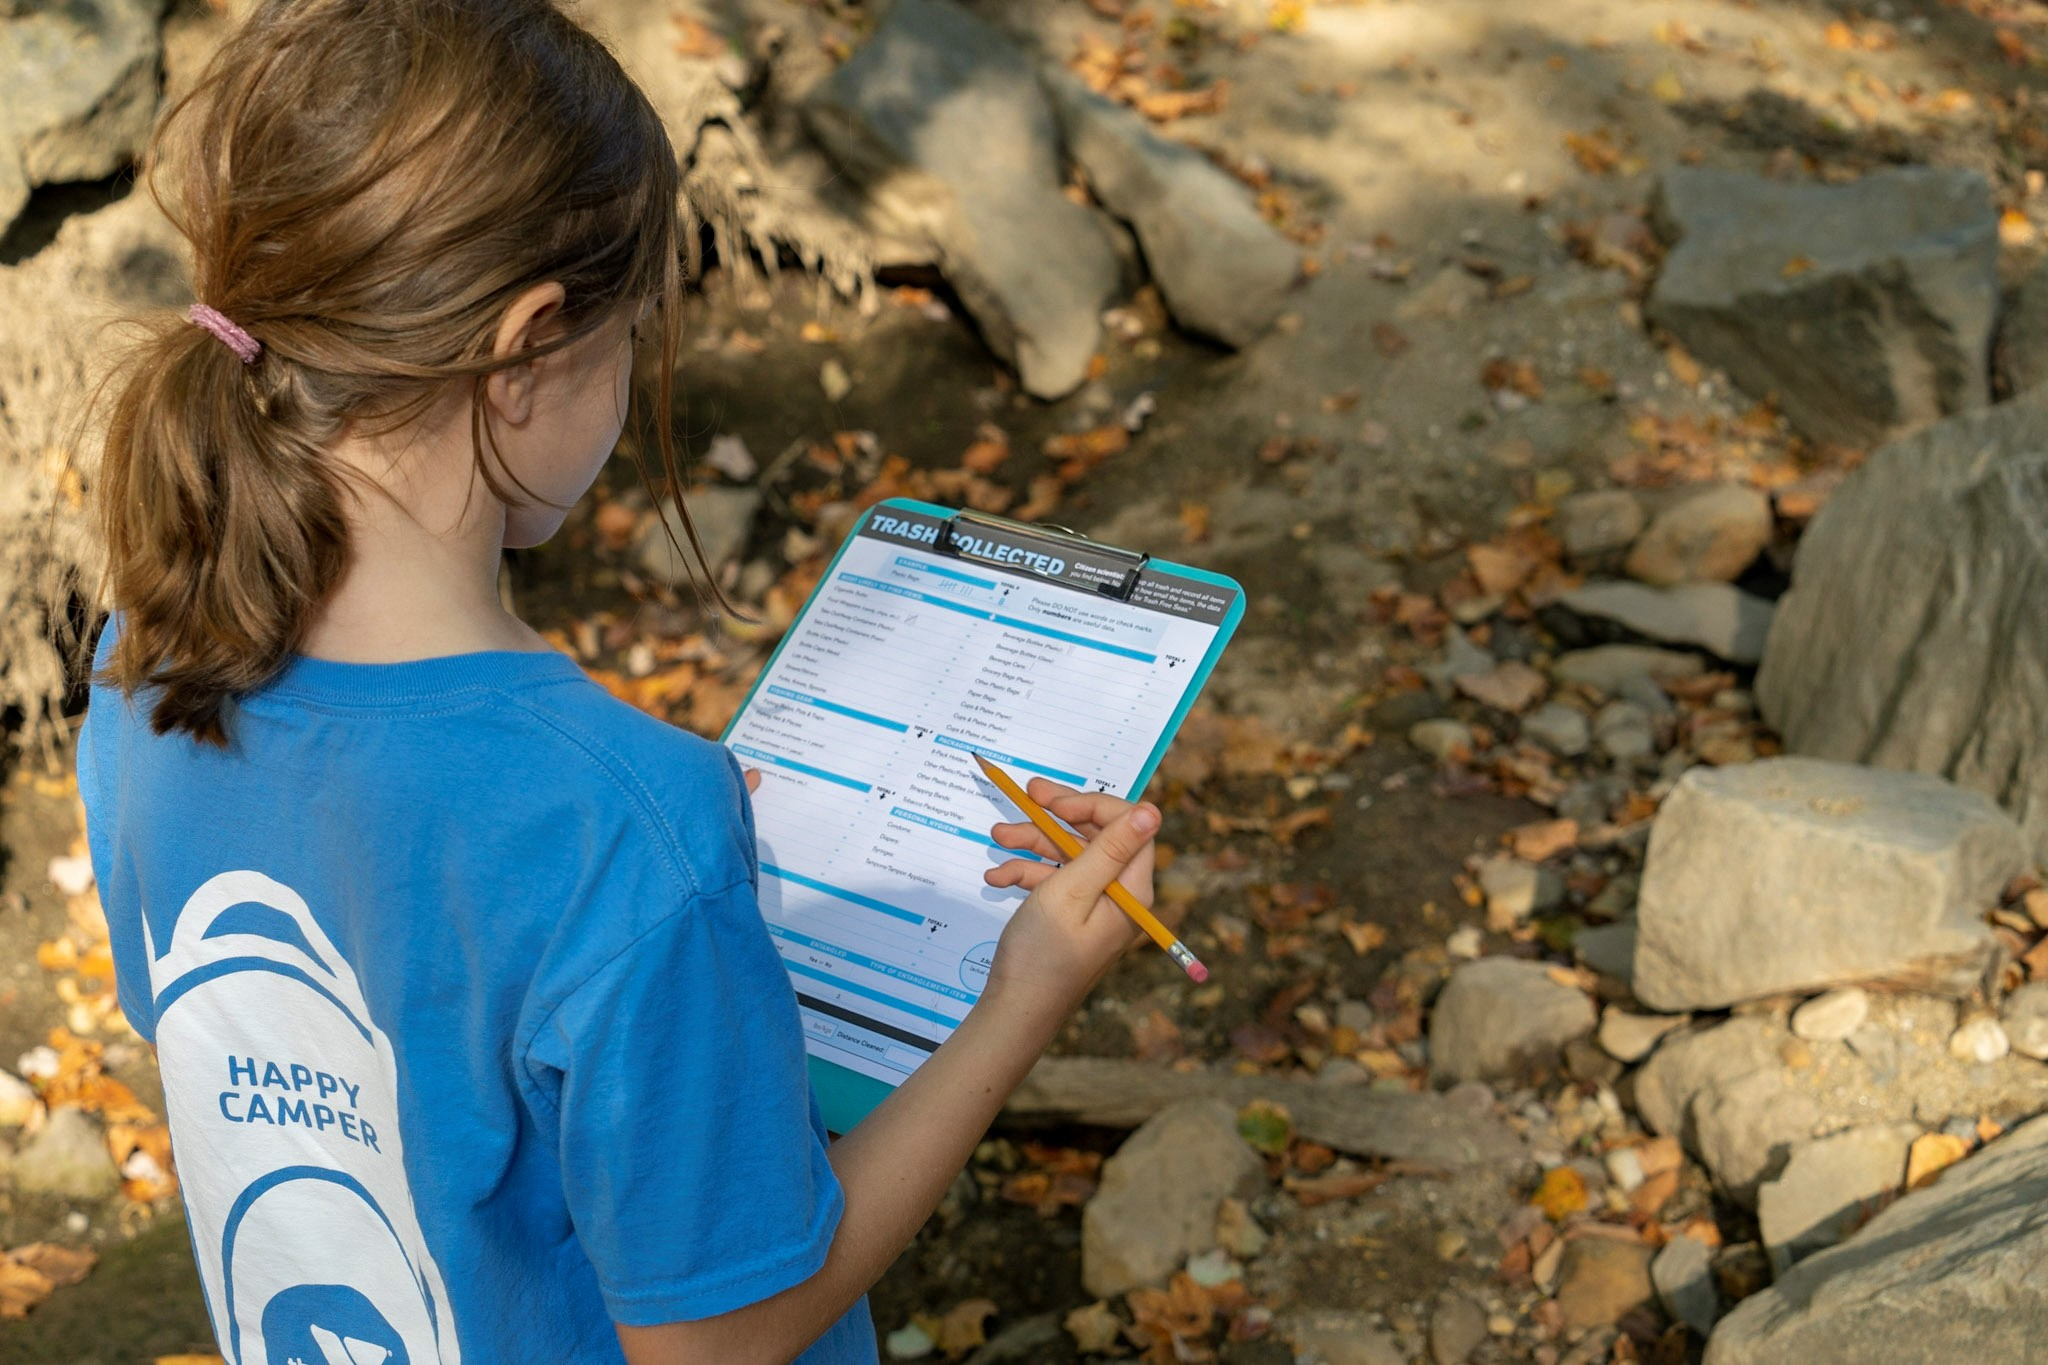 A girl holds a pencil and consults a checklist by the stream.